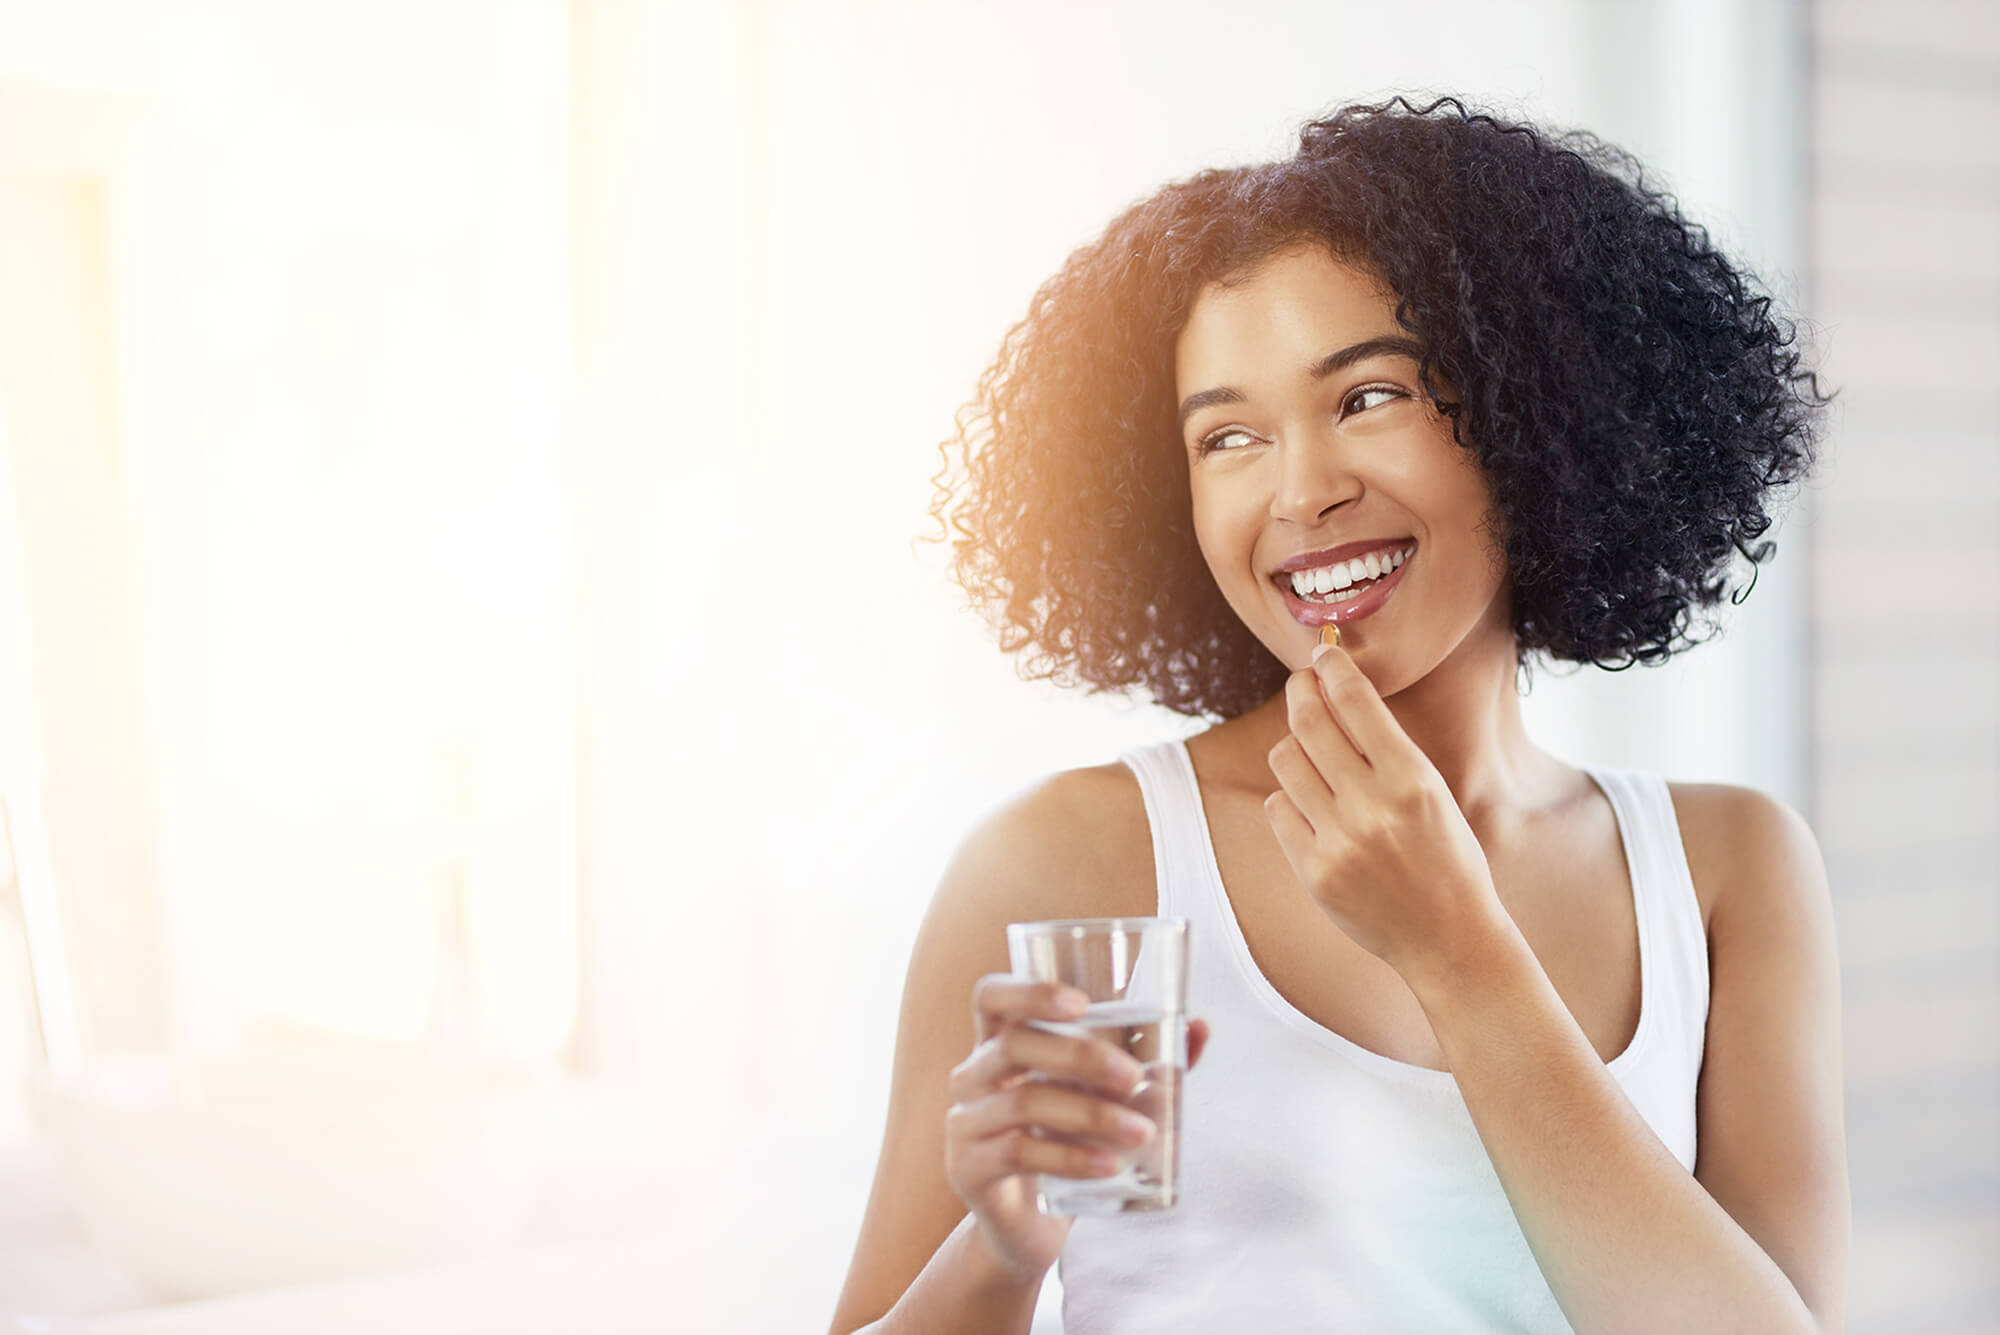 What vitamins are good for mental health